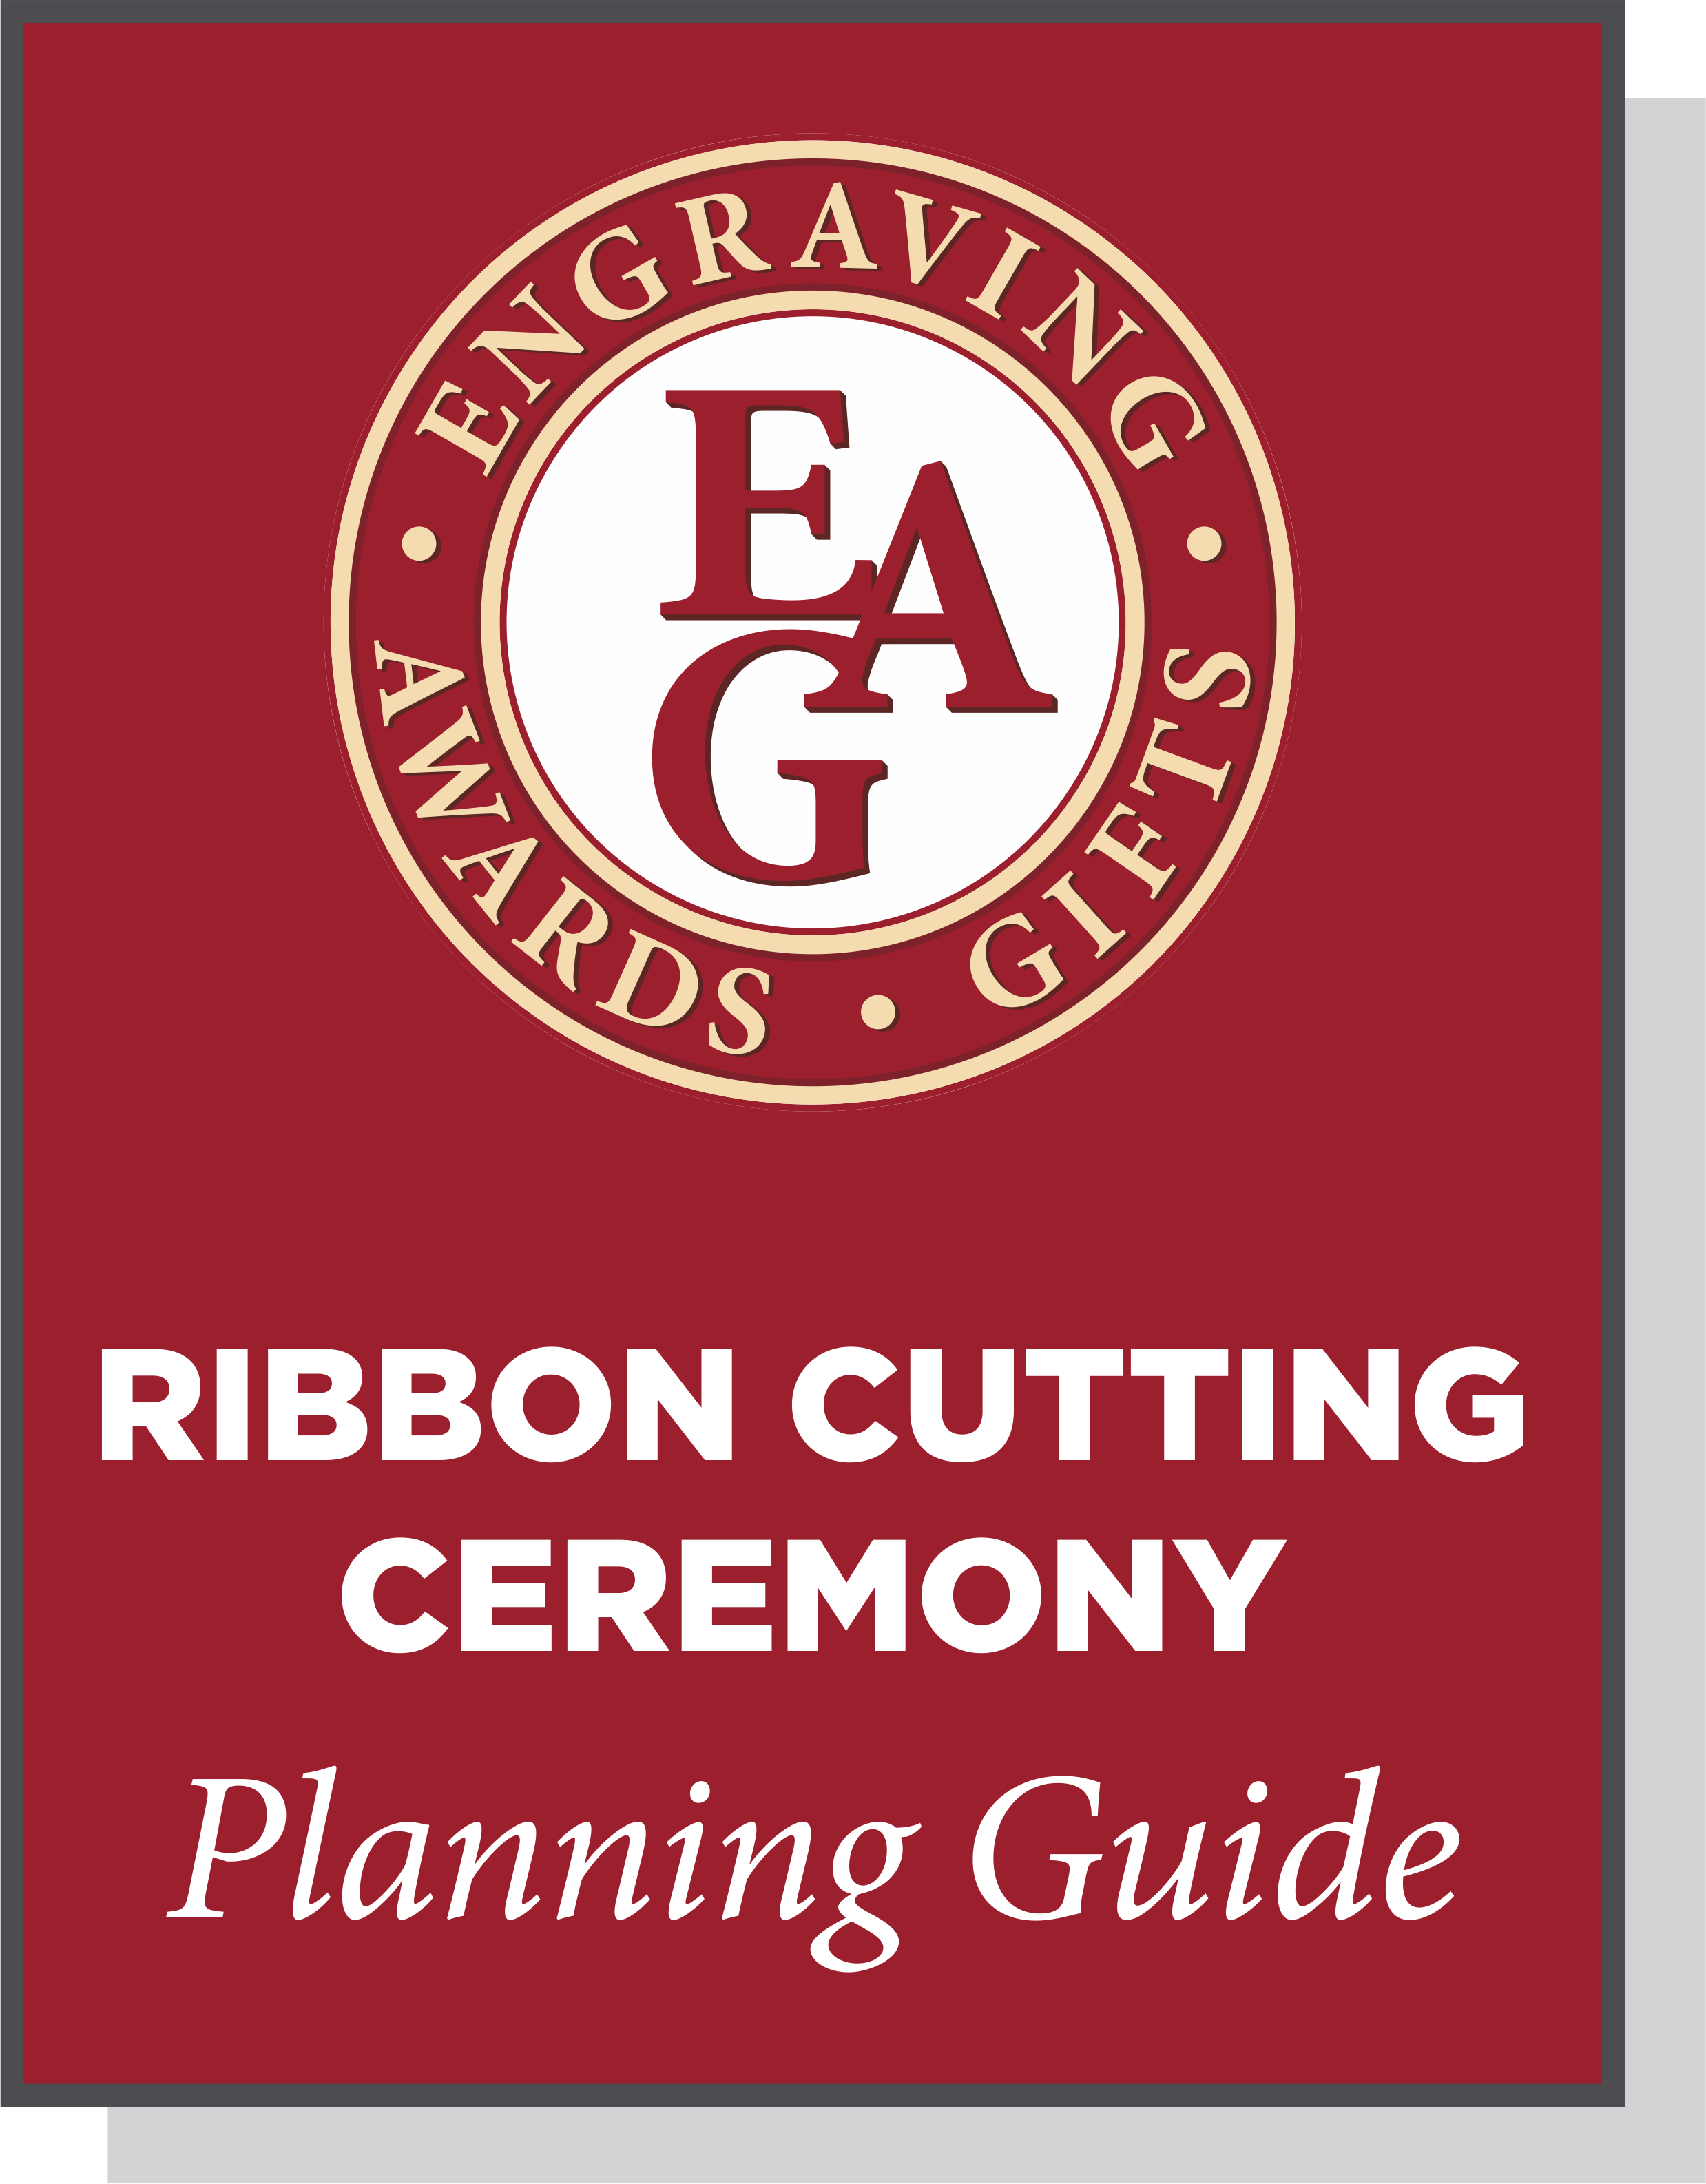 Ribbon Cutting Ceremony Planning Guide